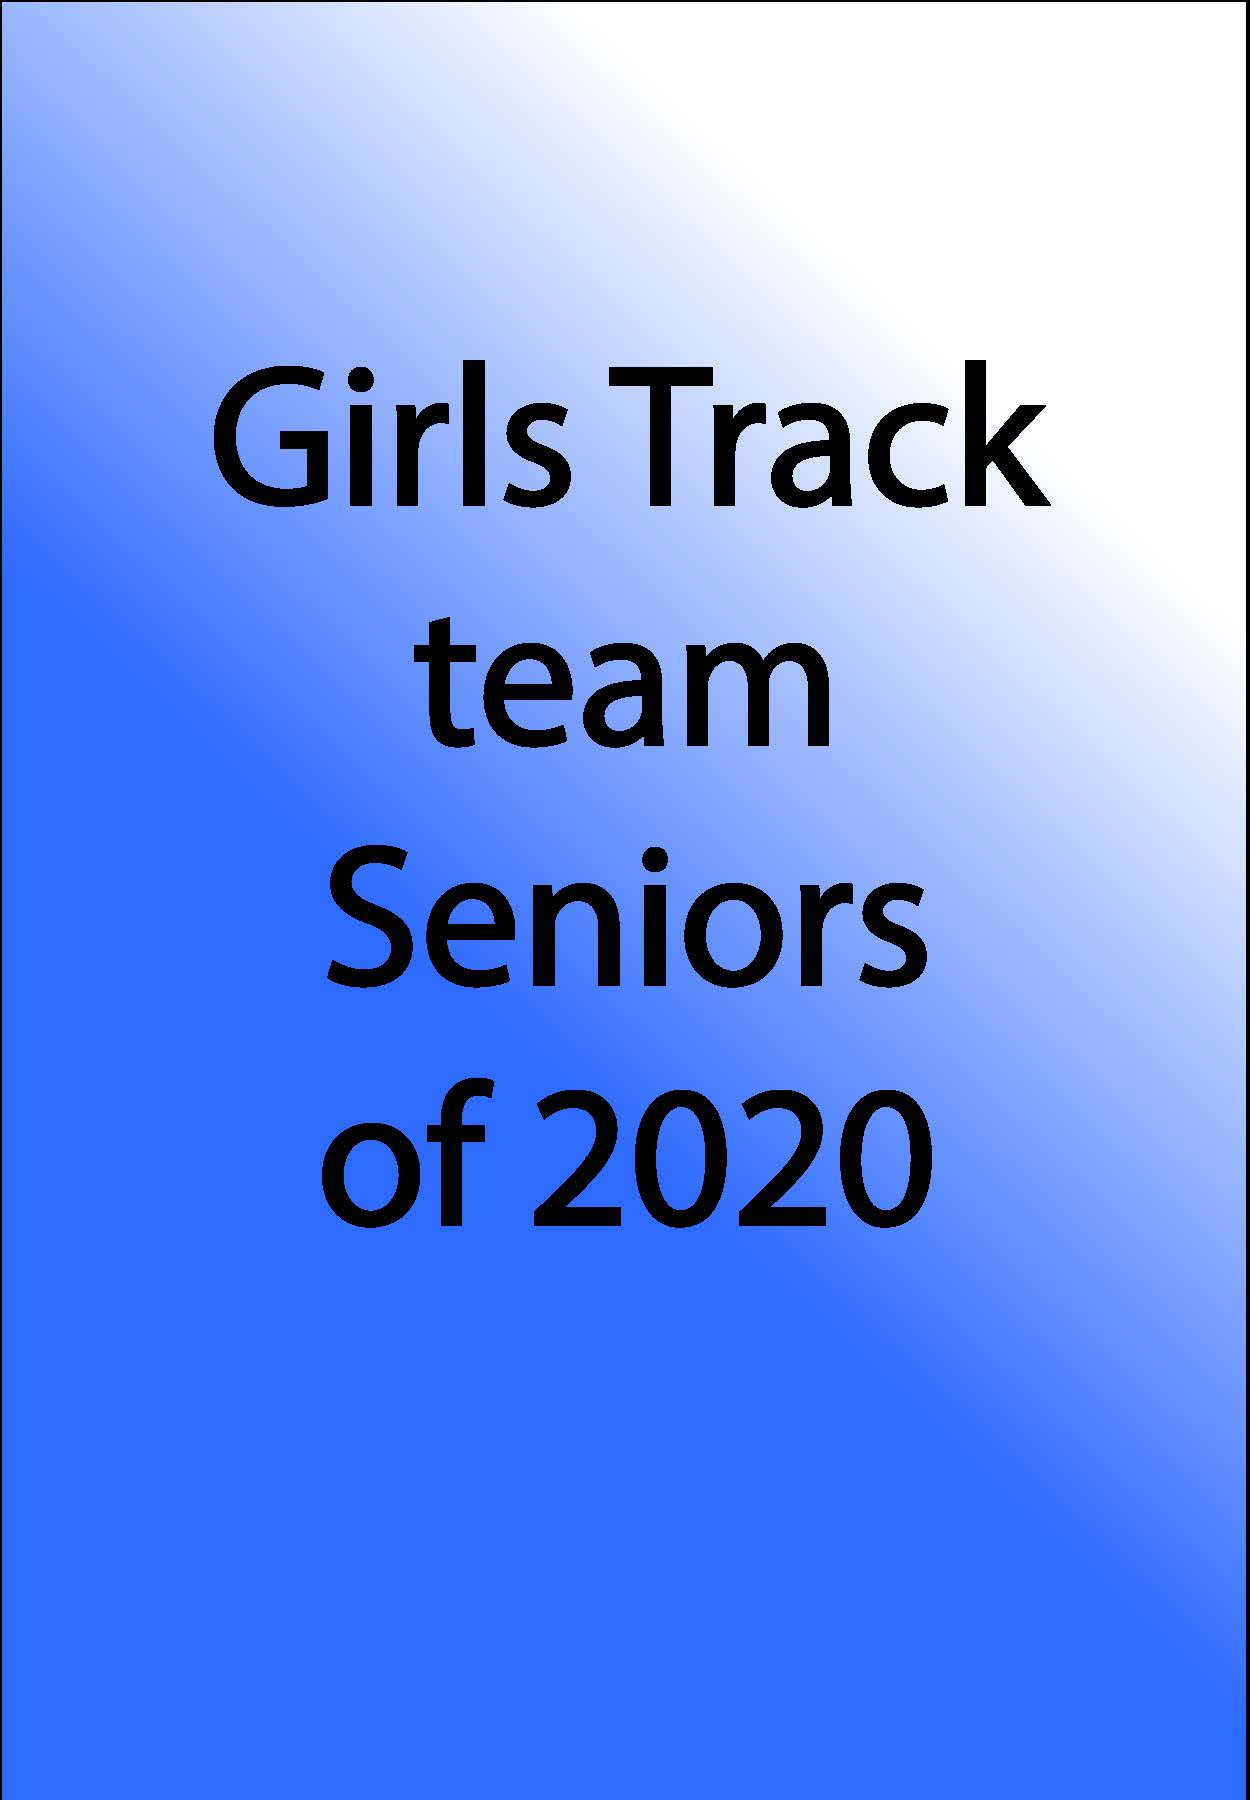 Girls Track Team Logo